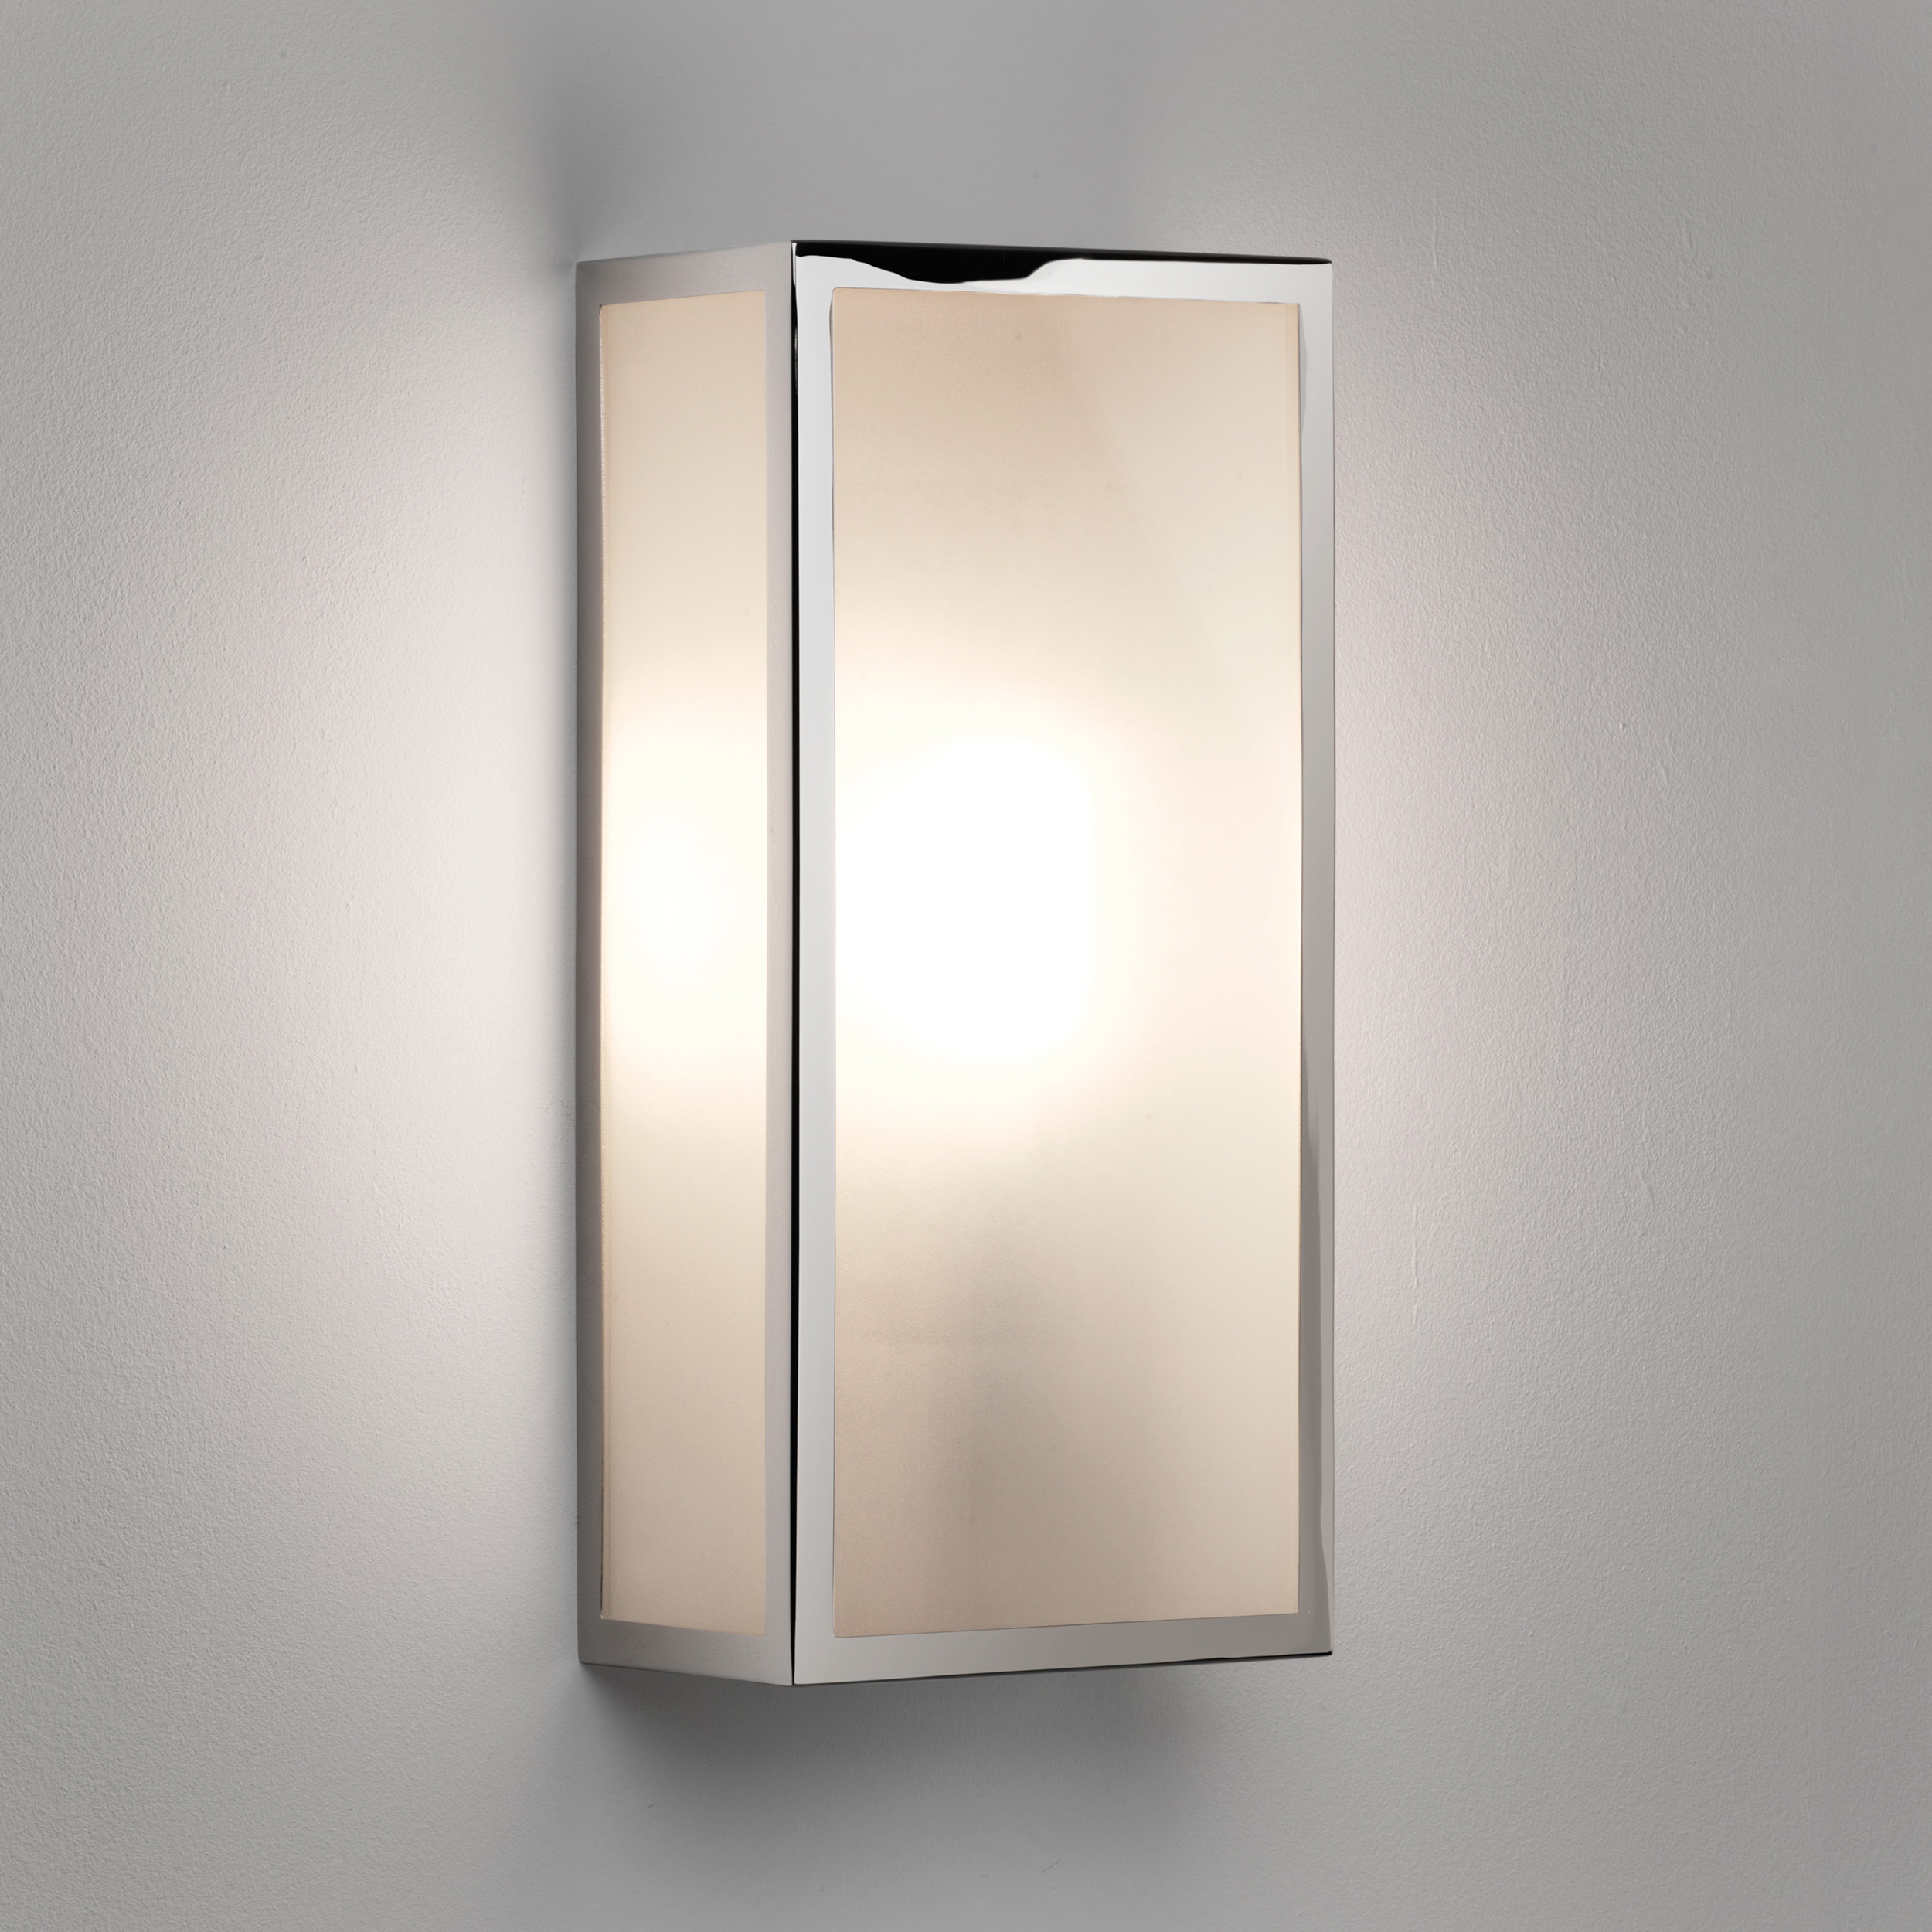 Astro Messina exterior external wall light 60W E27 polished nickel frosted glass eBay